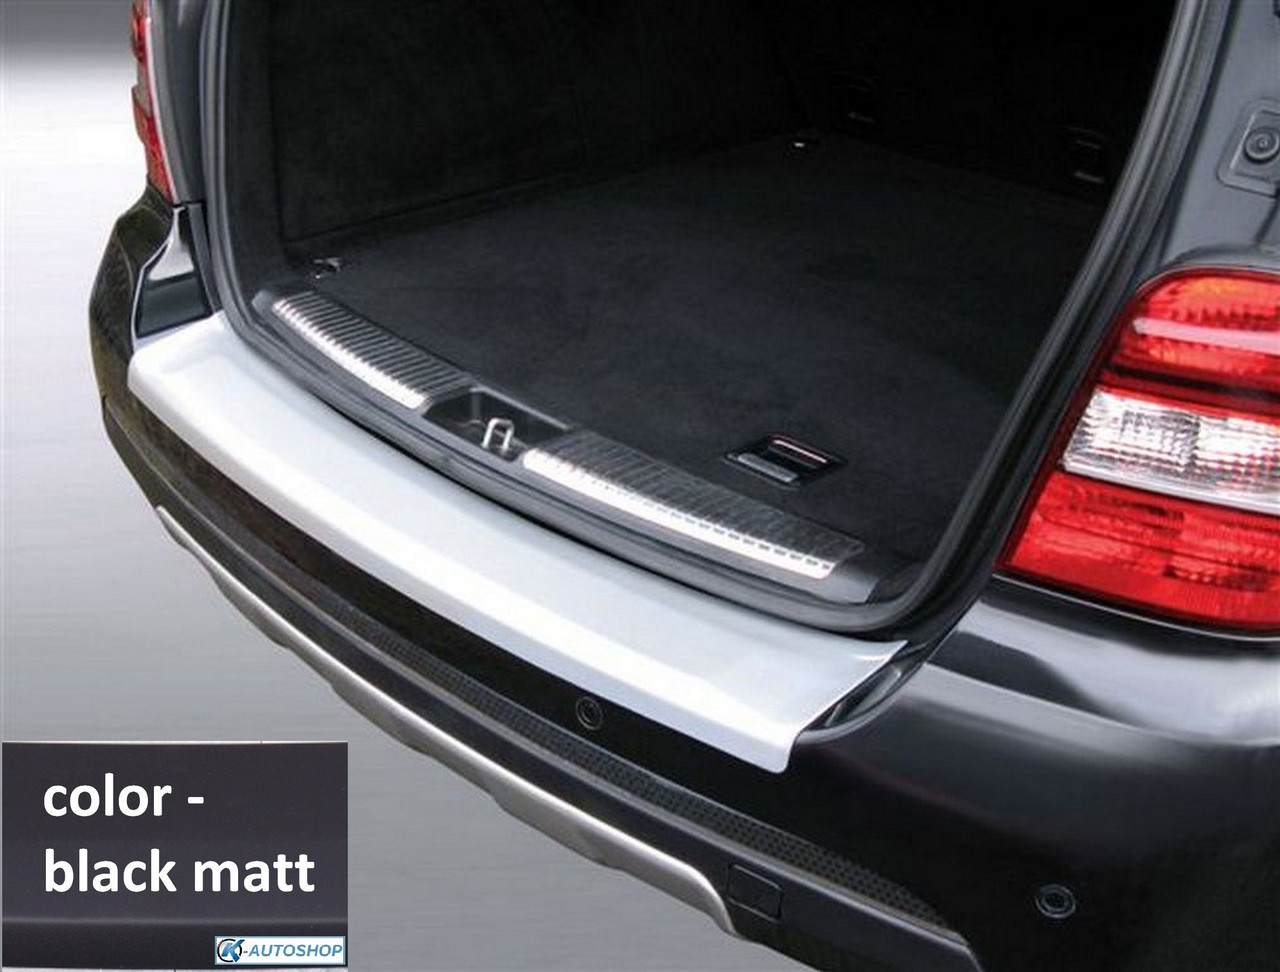 rbp397 Mercedes-Benz ML W164 2005-2011 rear bumper protector